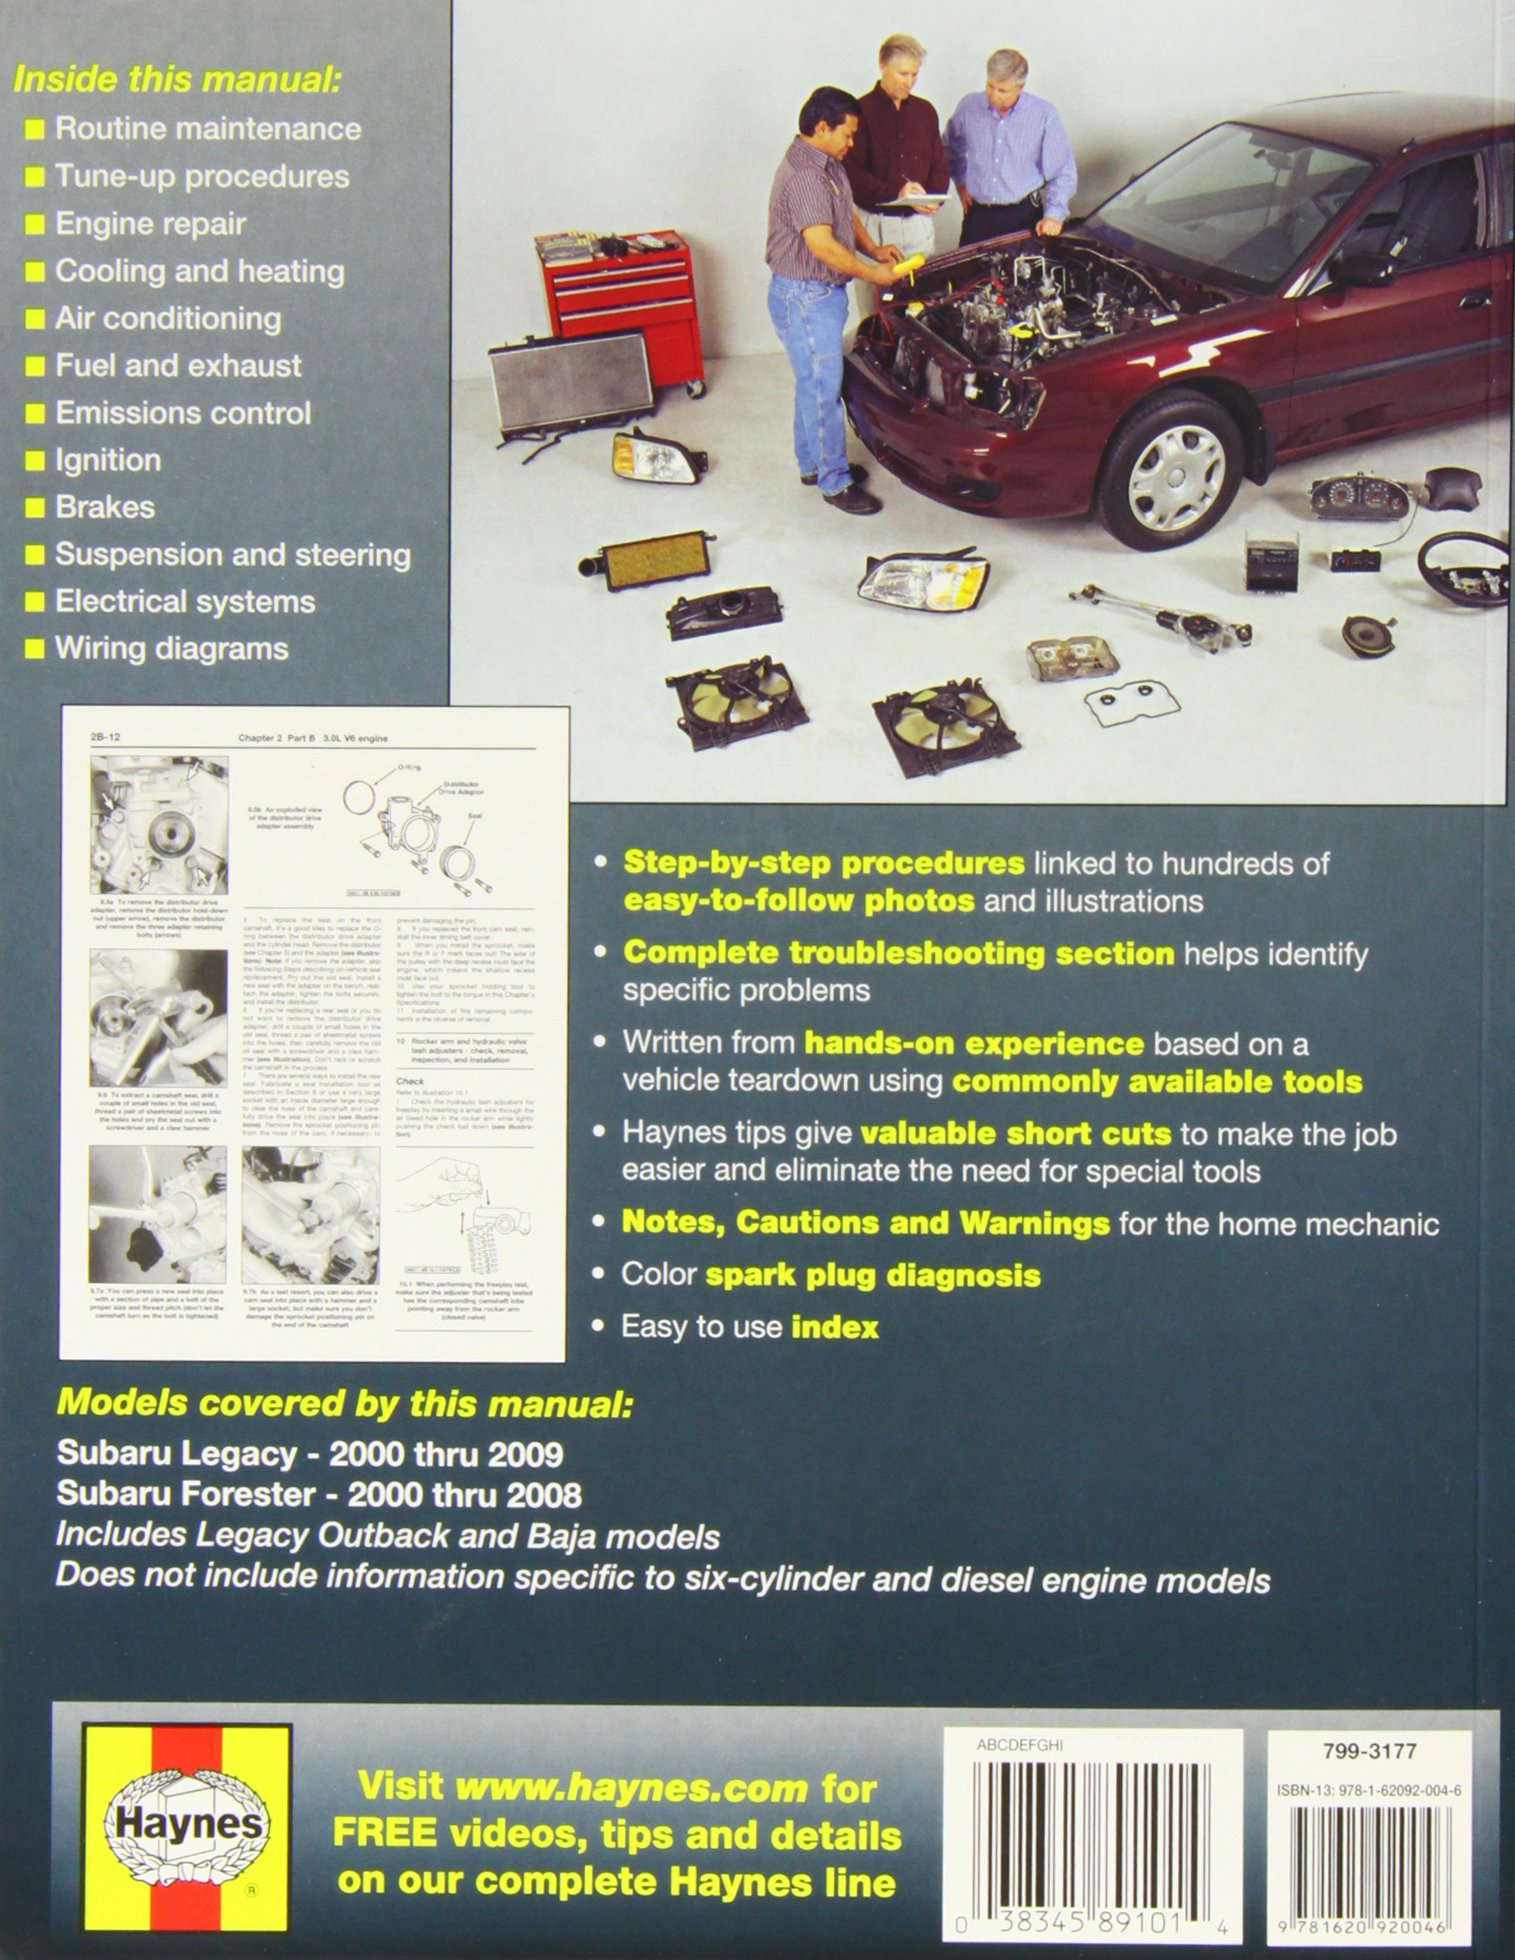 Subaru Legacy Forester 2000 09 Haynes Repair Manual Paperback Thermostat Publishing 0038345891014 Books